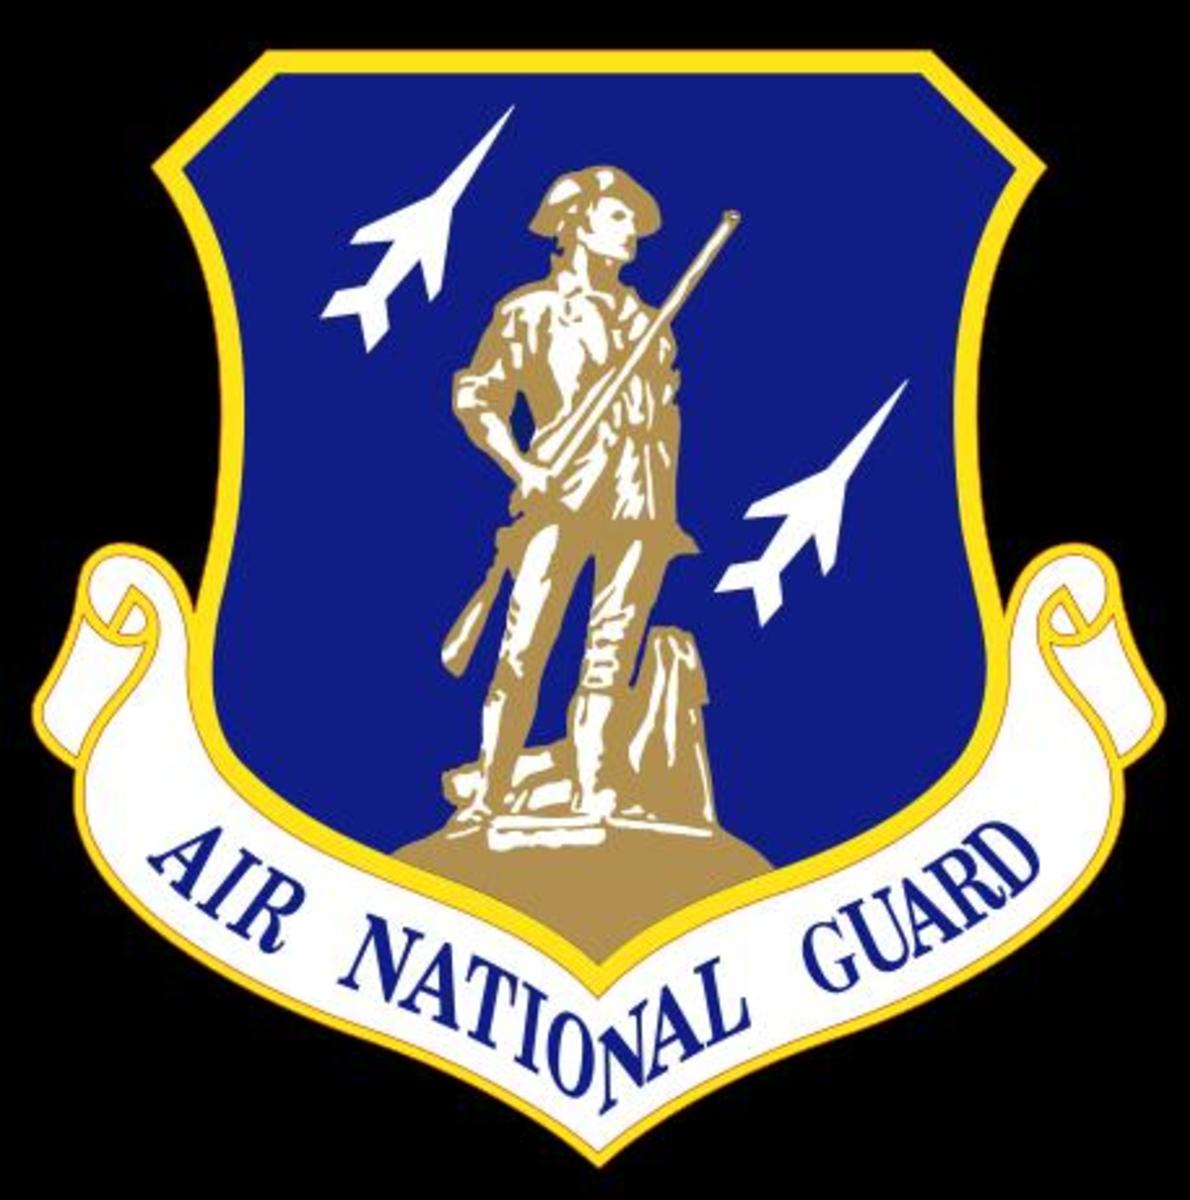 Logo of the Air National Guard (Public Domain Photo, courtesy of WikiPedia.org  http://en.wikipedia.org/wiki/File:Air_national_guard_shield.svg)